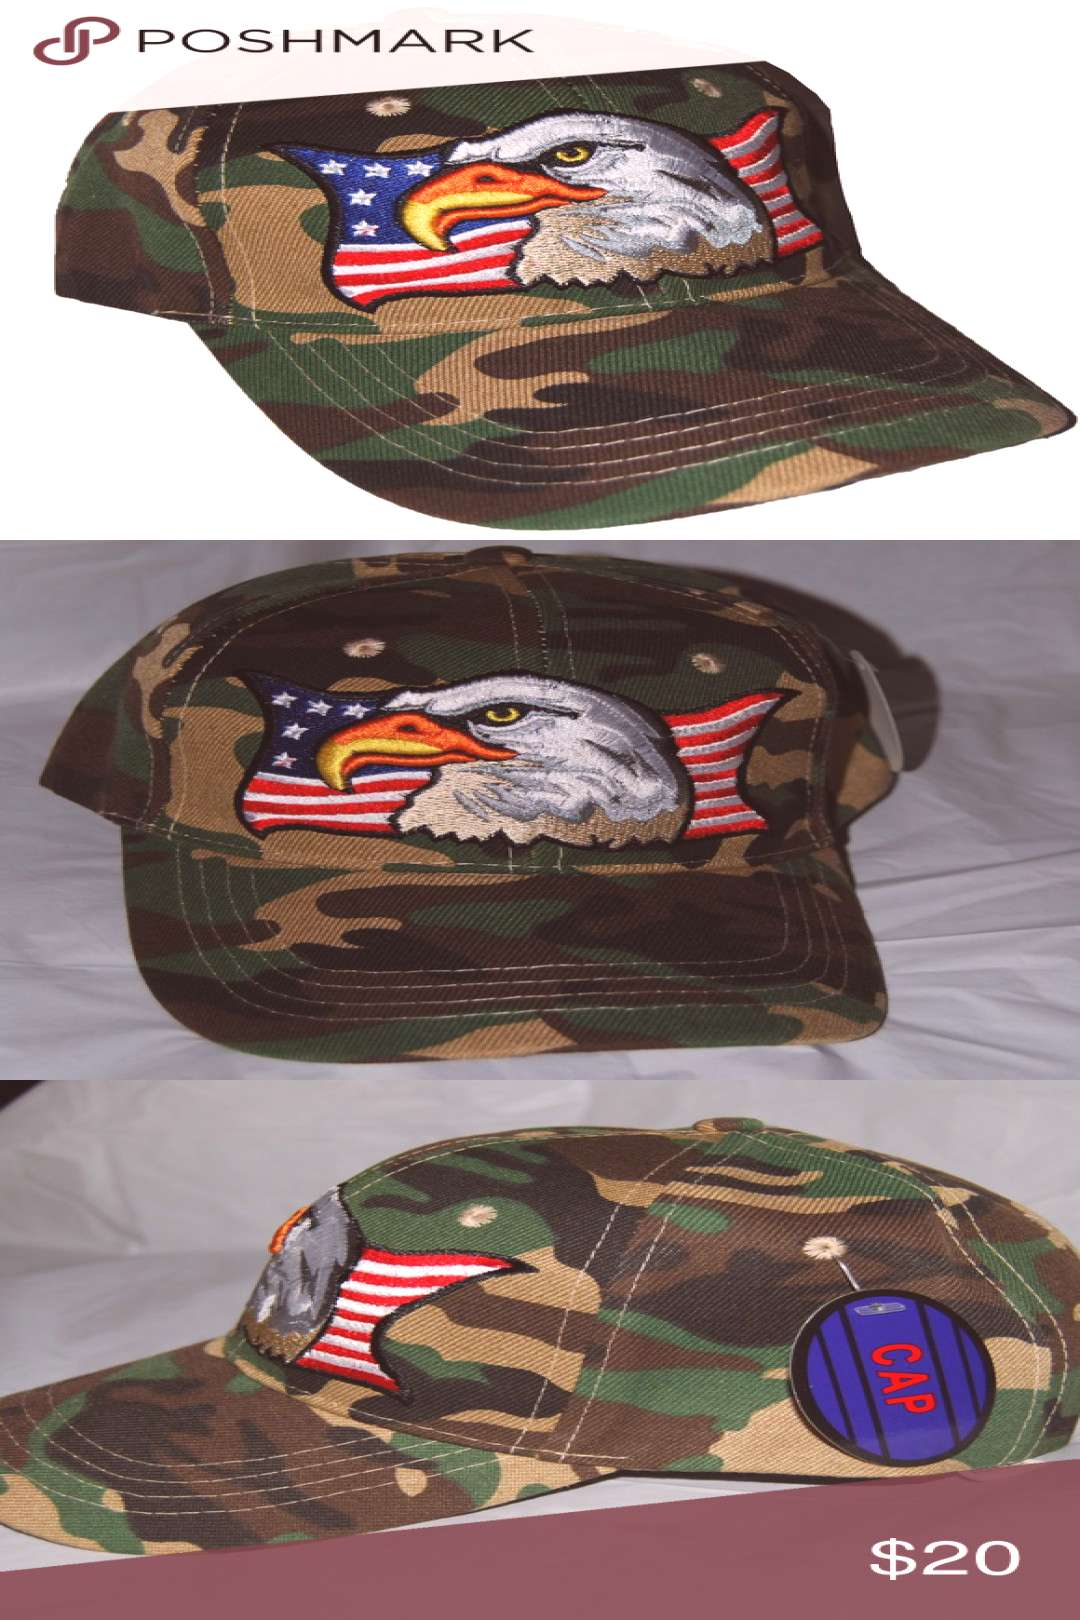 Camo Hat Outfits Women Fall _ Camo Hat Outfits Women camo hat outfits women fall ~ camo hat outfits